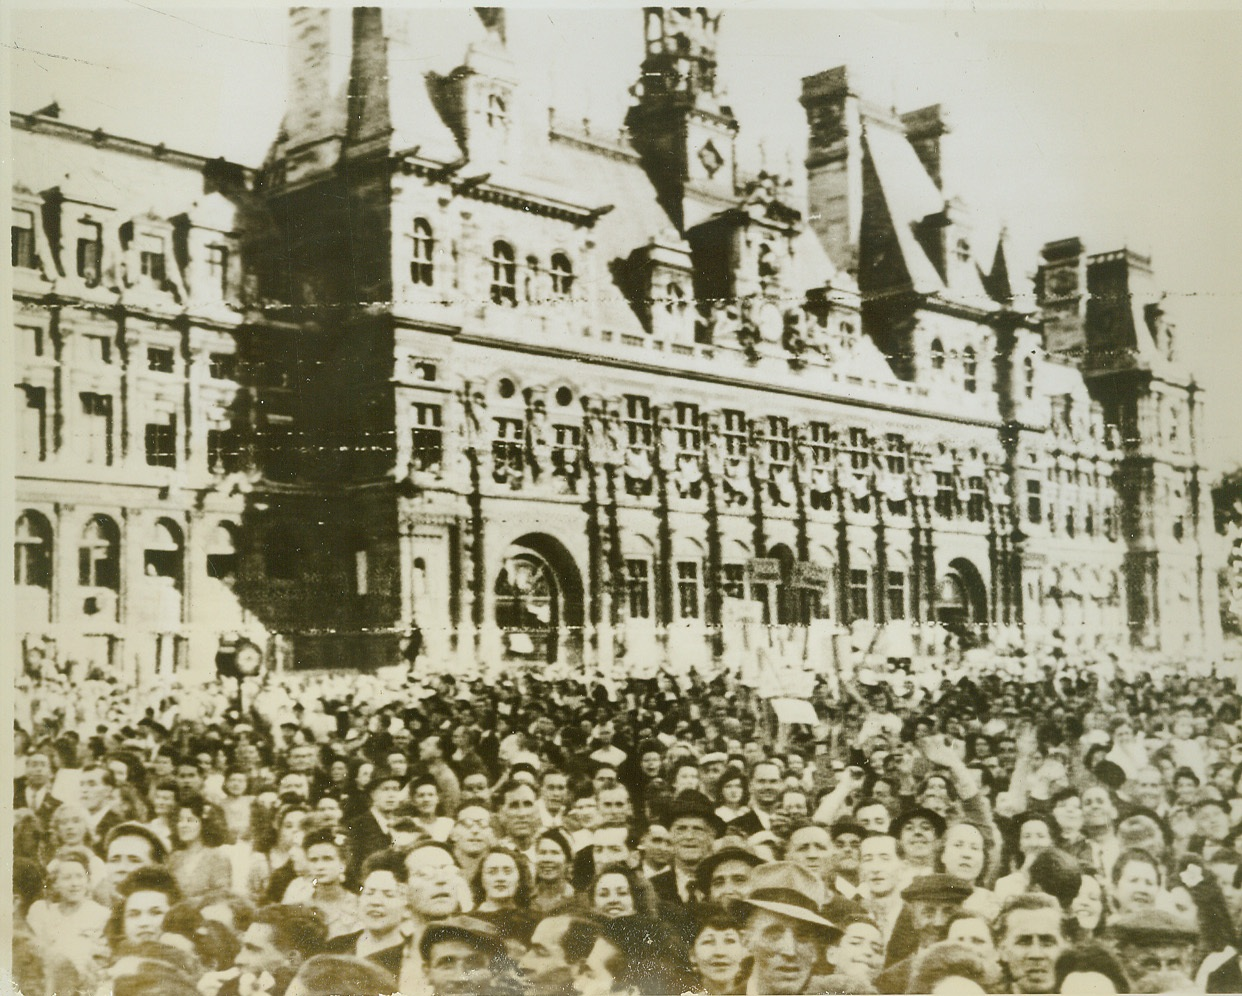 Celebrants Mass in Paris Streets, 8/28/1944. Paris—With faces reflecting the joy of being free once more, Parisians mass in front of the Hotel de Ville in Paris to celebrate the liberation of their city. Shortly afterward, as their voices raised in triumphant cheers for Gen. de Gaulle, shots rang out over their exuberant voices as snipers preyed on the assembly. The General, leading a triumphal procession, narrowly escaped death or injury.  Credit: Signal Corps radiotelephoto from ACME;